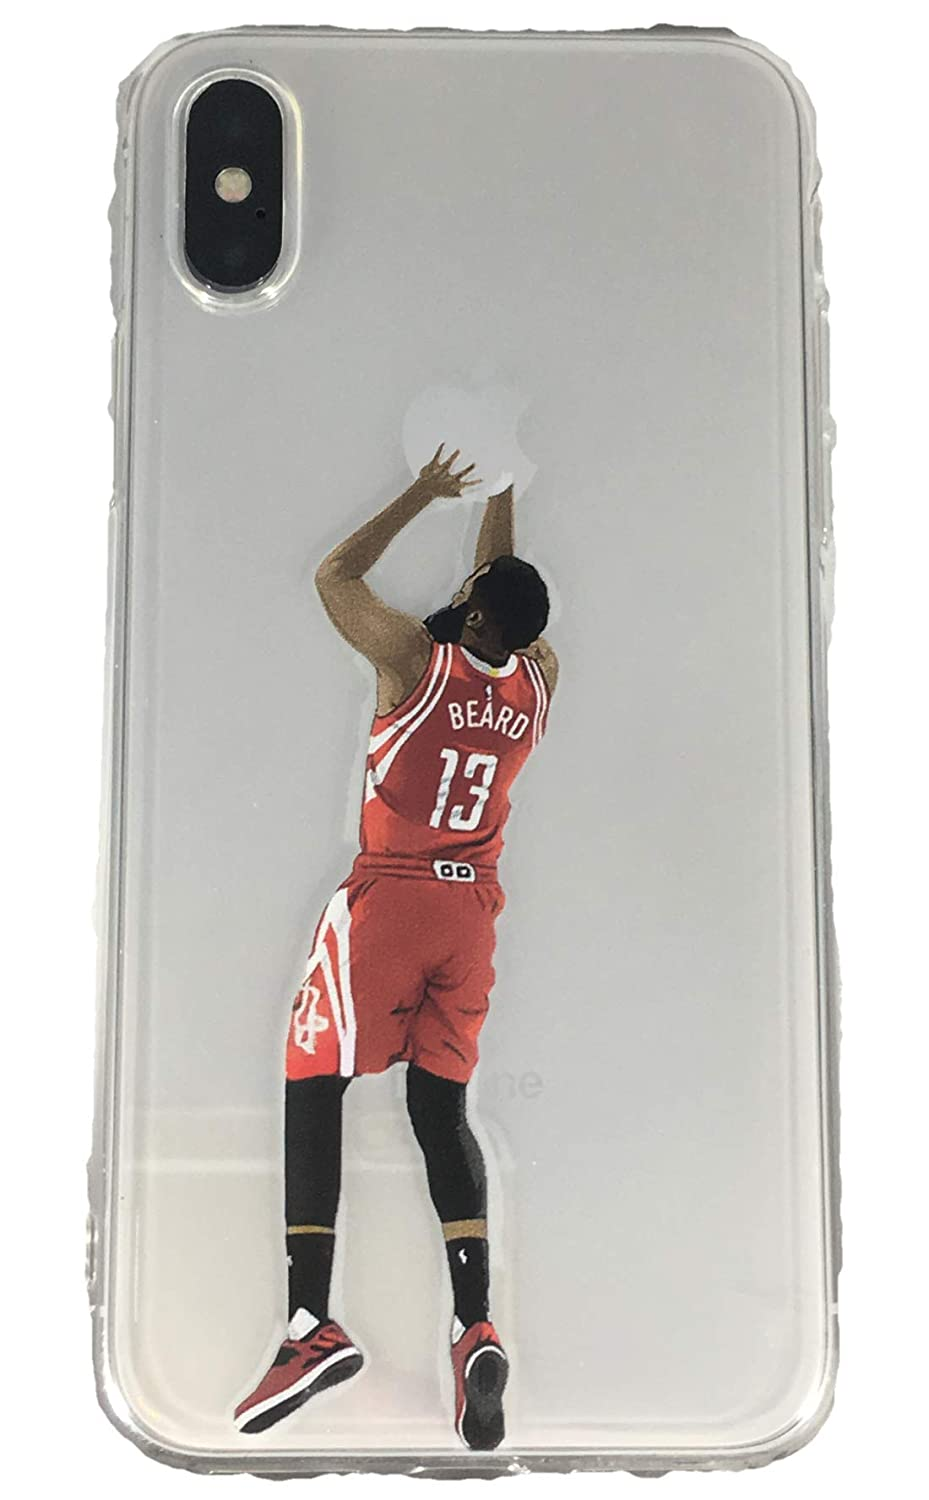 a0f2a1ee0425e ECHC Soft TPU Basketball Case with Your Favorite Past and Present Players  Compatible for iPhone (Harden Jump Shot, iPhone 7 Plus)